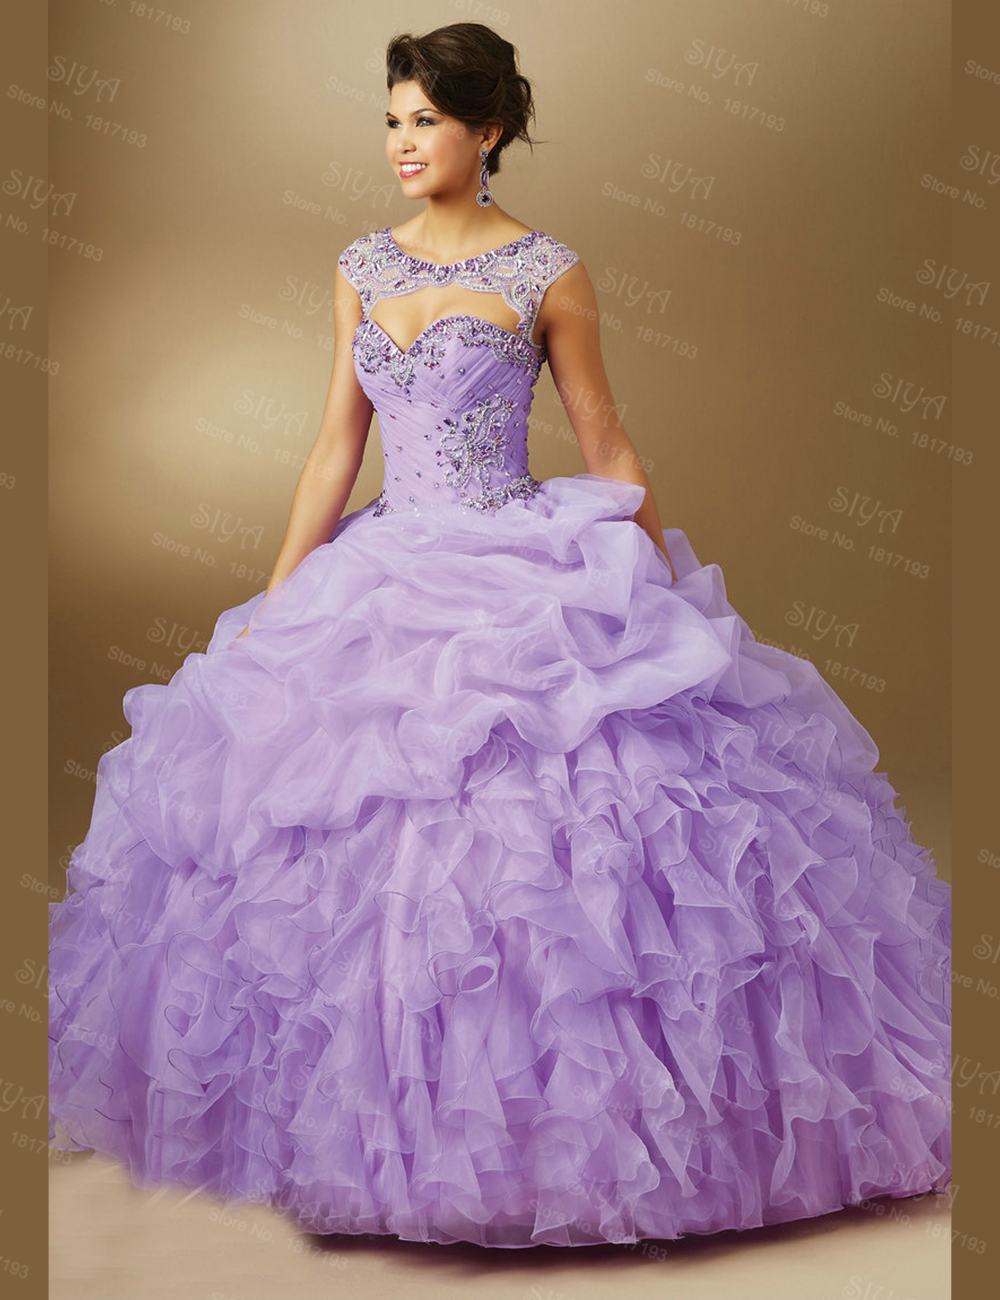 Where can i buy a quinceanera dress